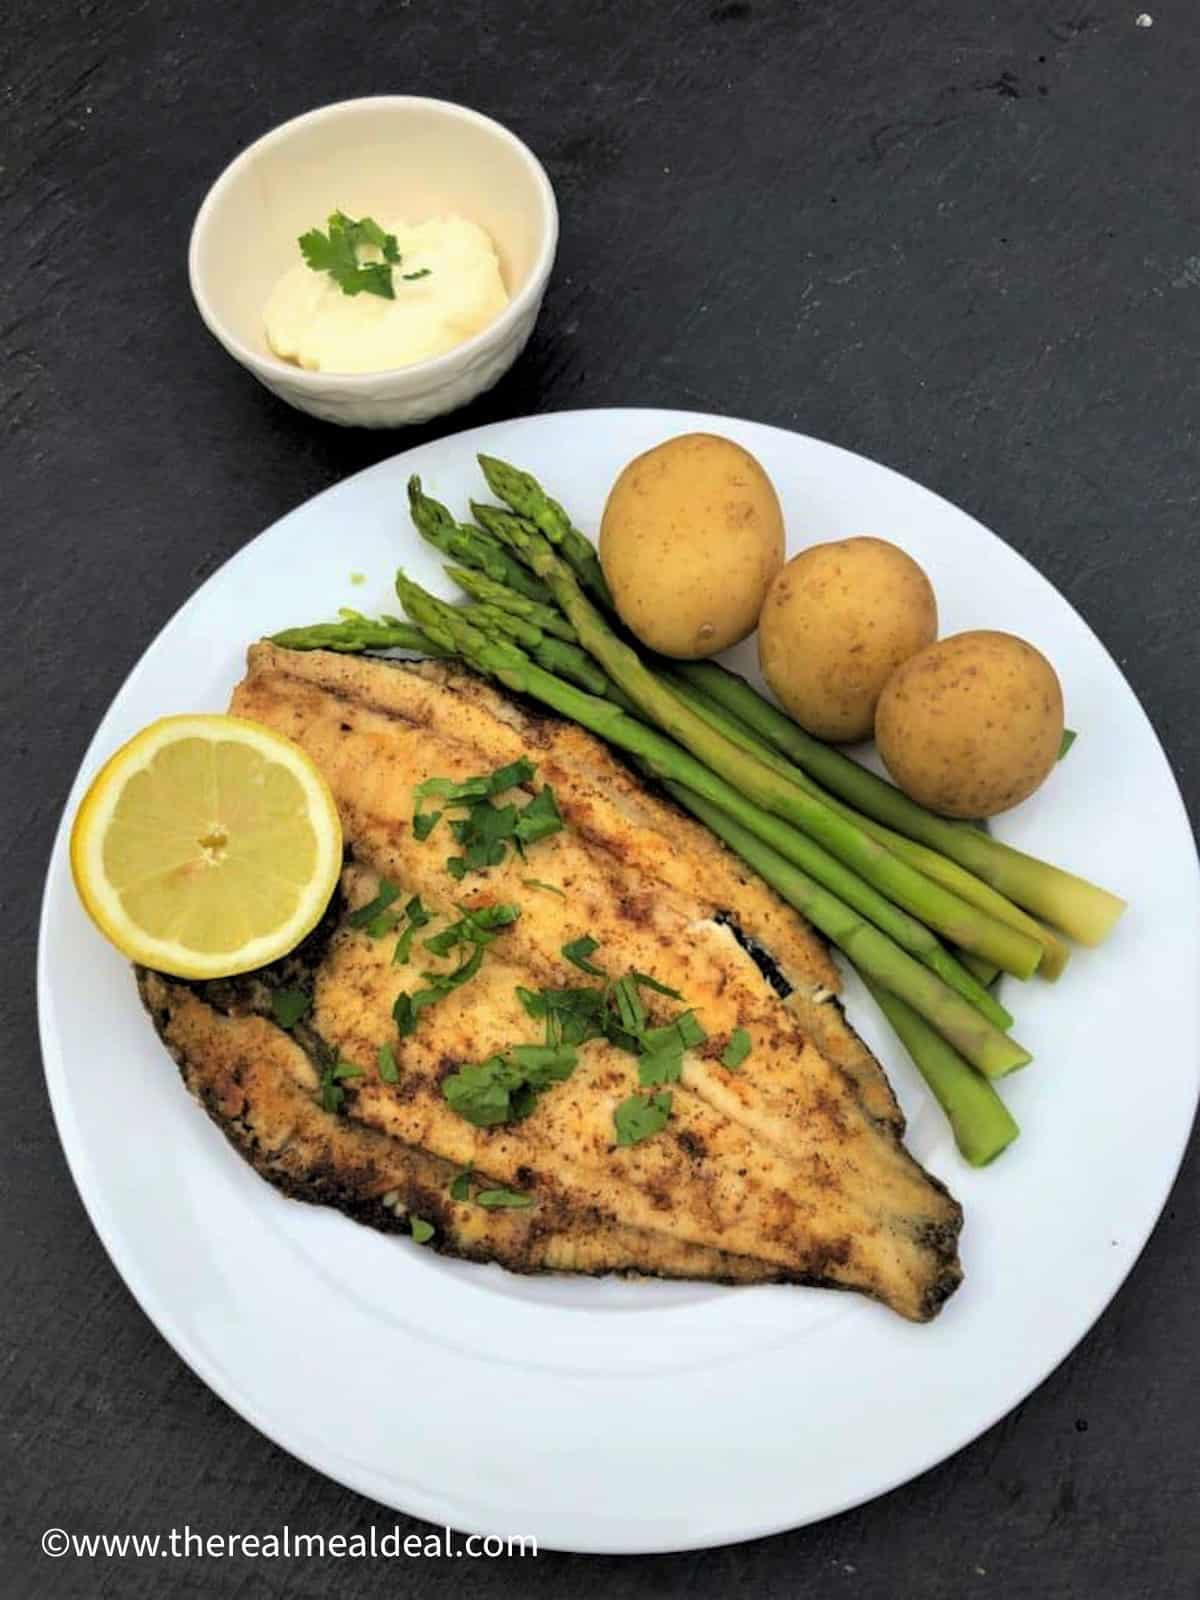 pan fried plaice with new potatoes and asparagus on plate